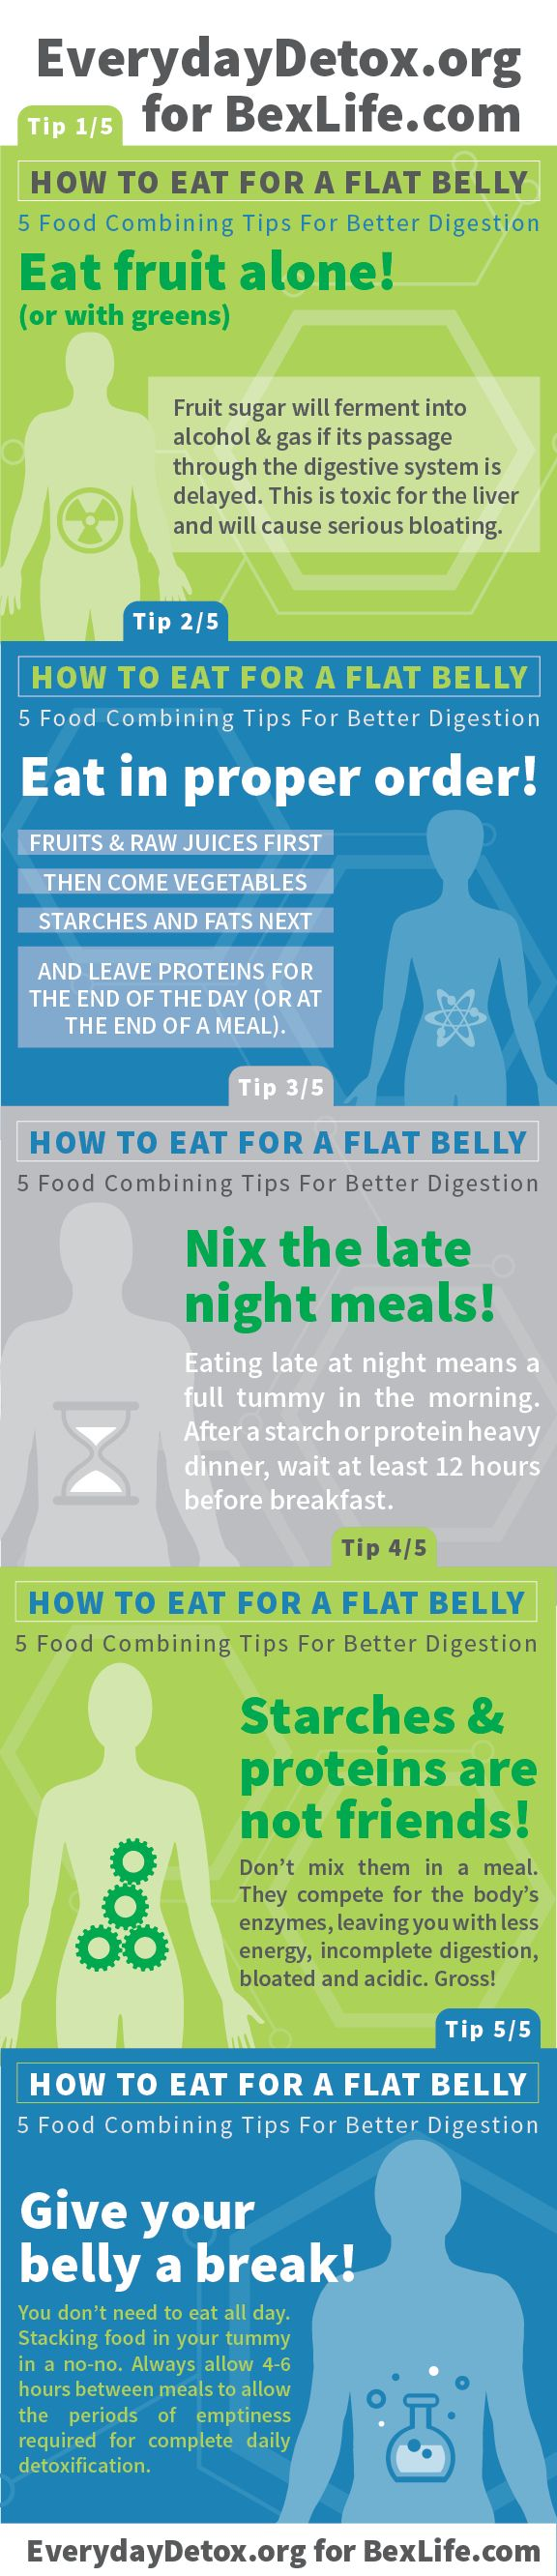 20 best food combining images on pinterest healthy meals food how to get a flat belly in 5 days 5 easy diet tips video forumfinder Gallery